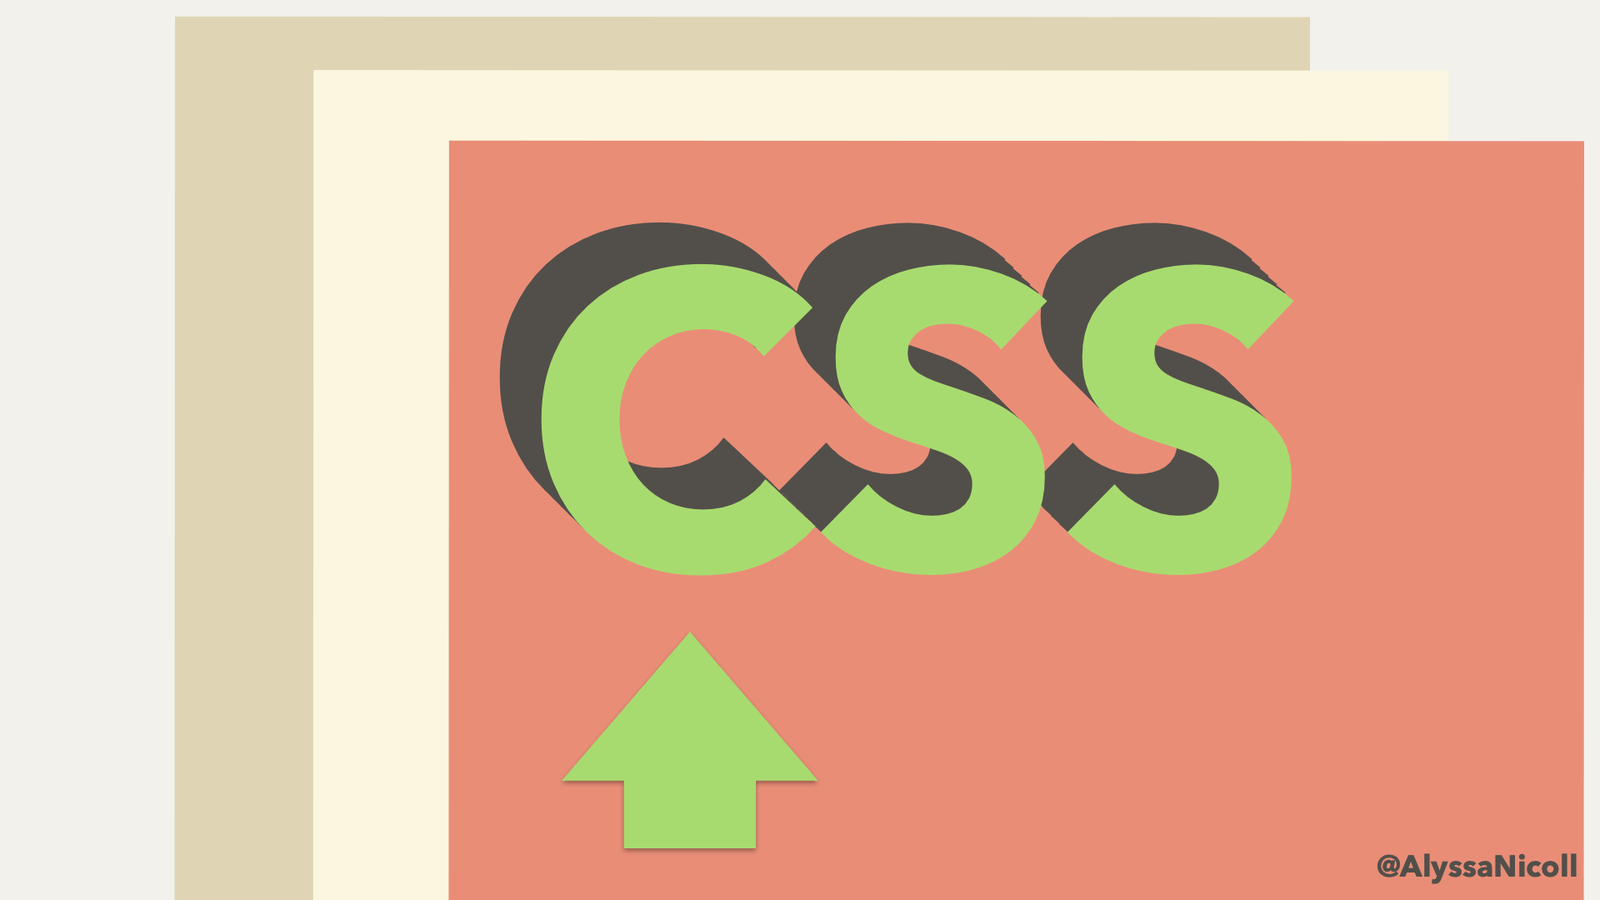 arrow pointing to the 'C' in 'CSS'